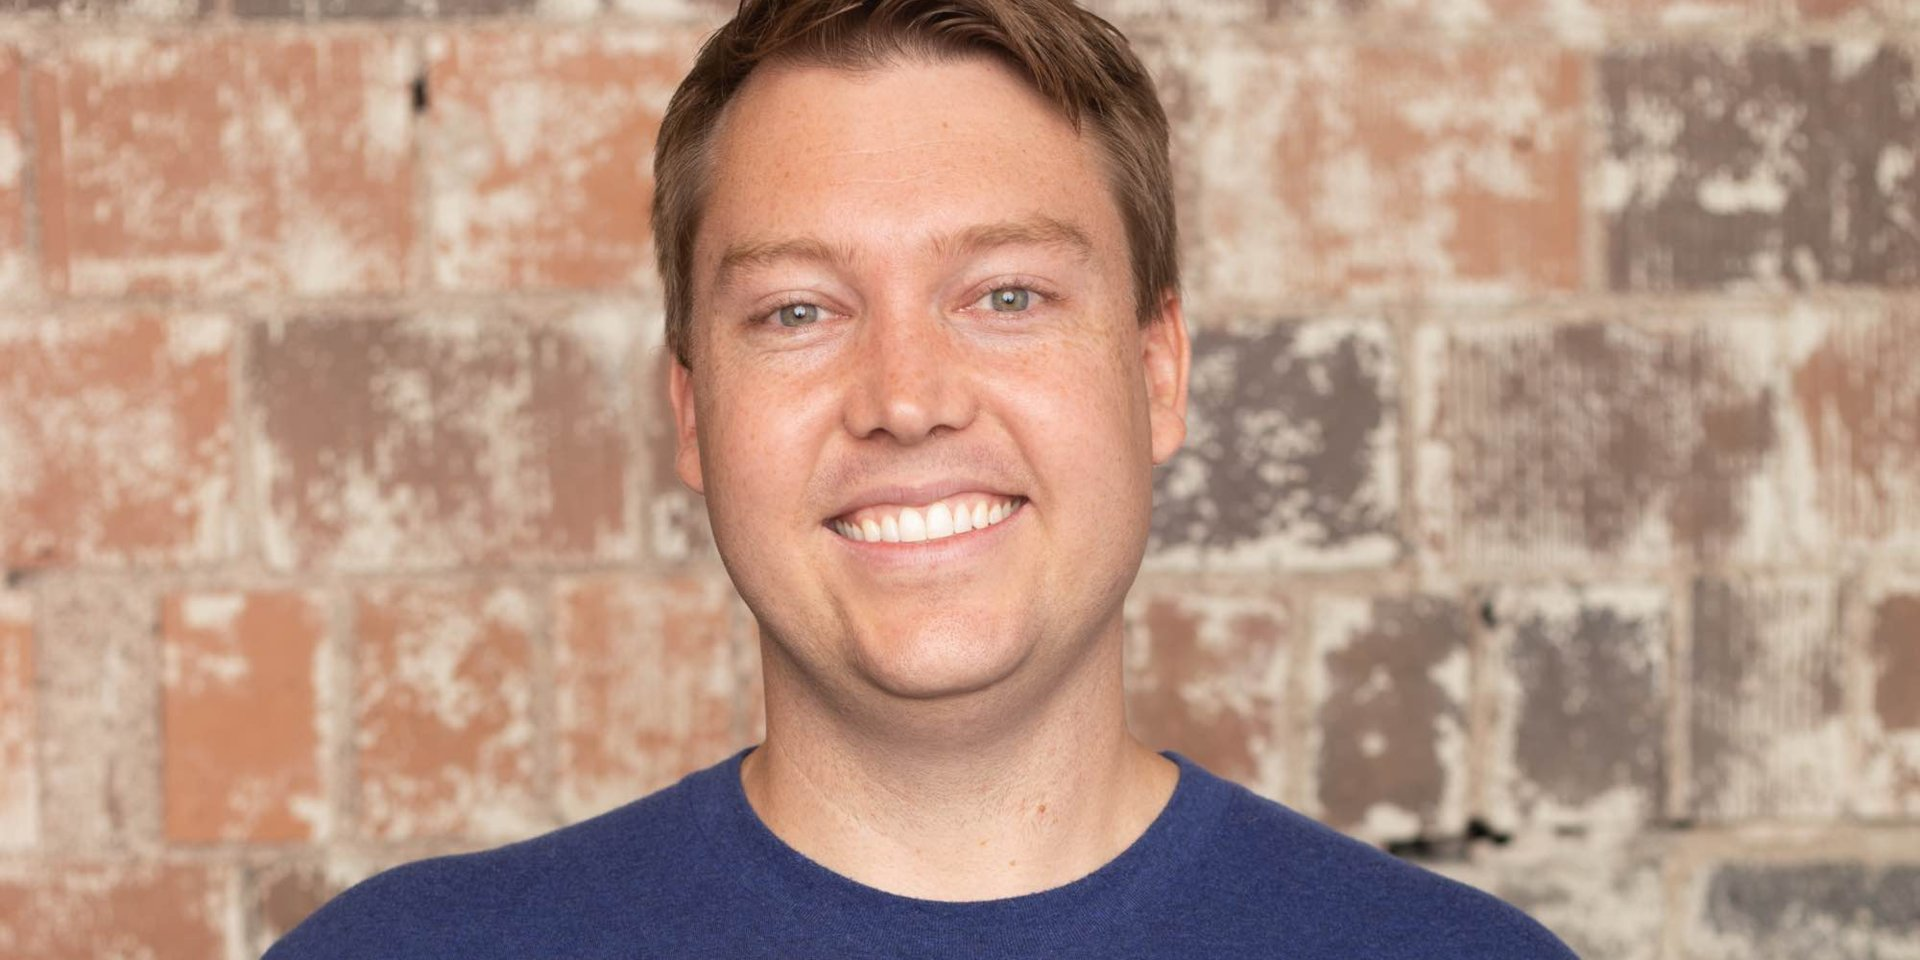 Zestful is helping startups compete with Google and Facebook in the talent hiring wars